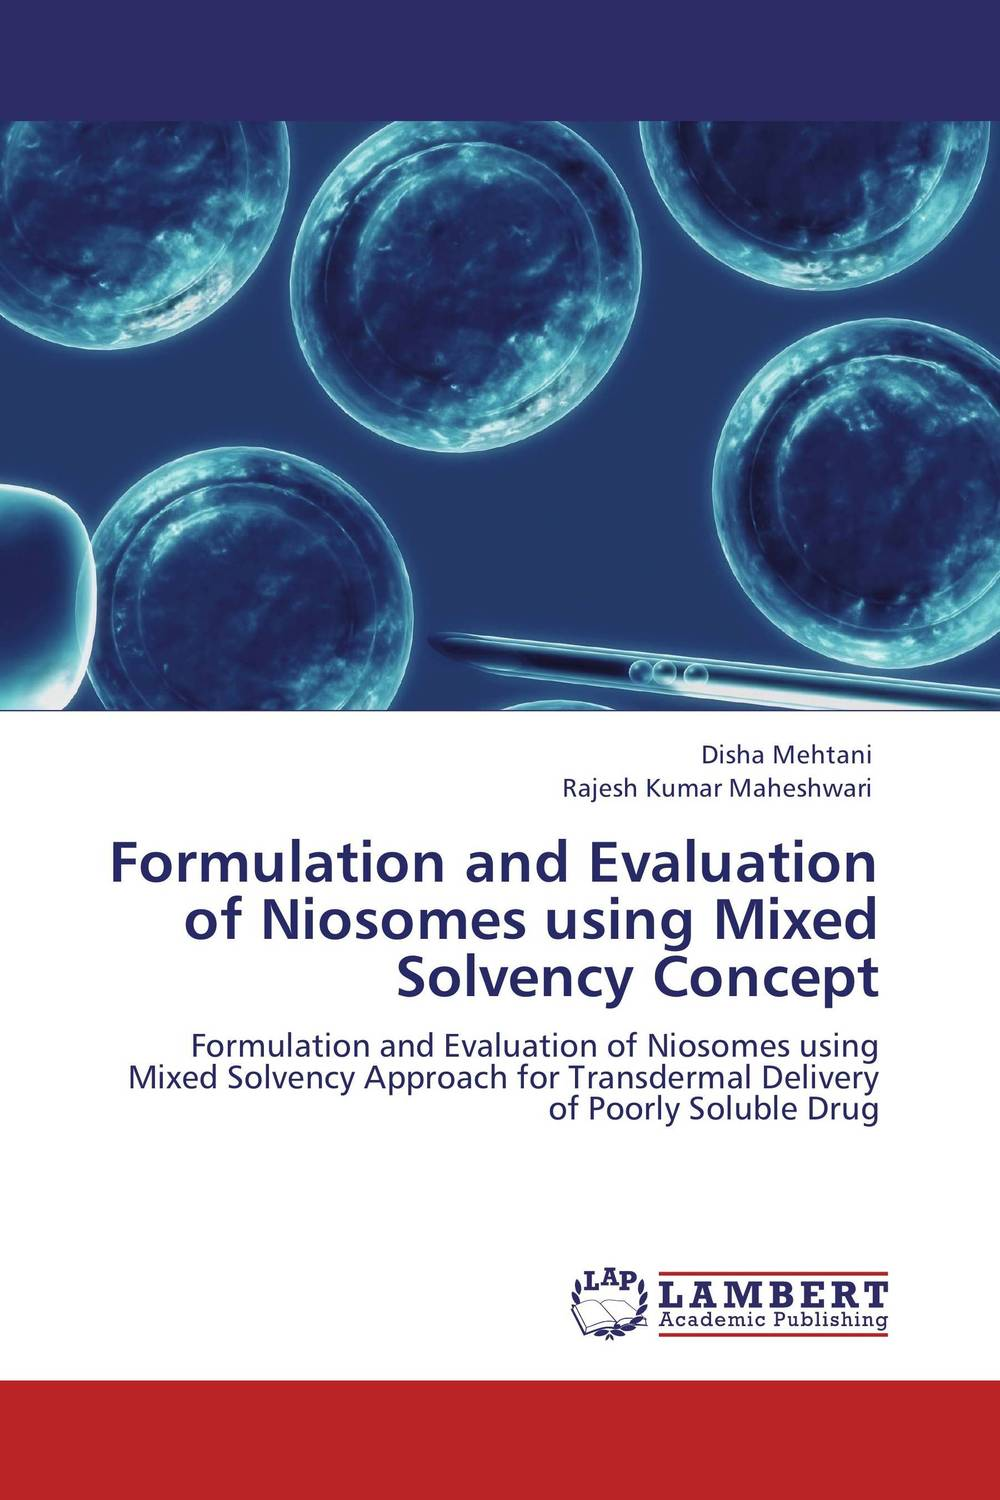 Formulation and Evaluation of Niosomes using Mixed Solvency Concept formulation and evaluation of microspheres by mixed solvency concept